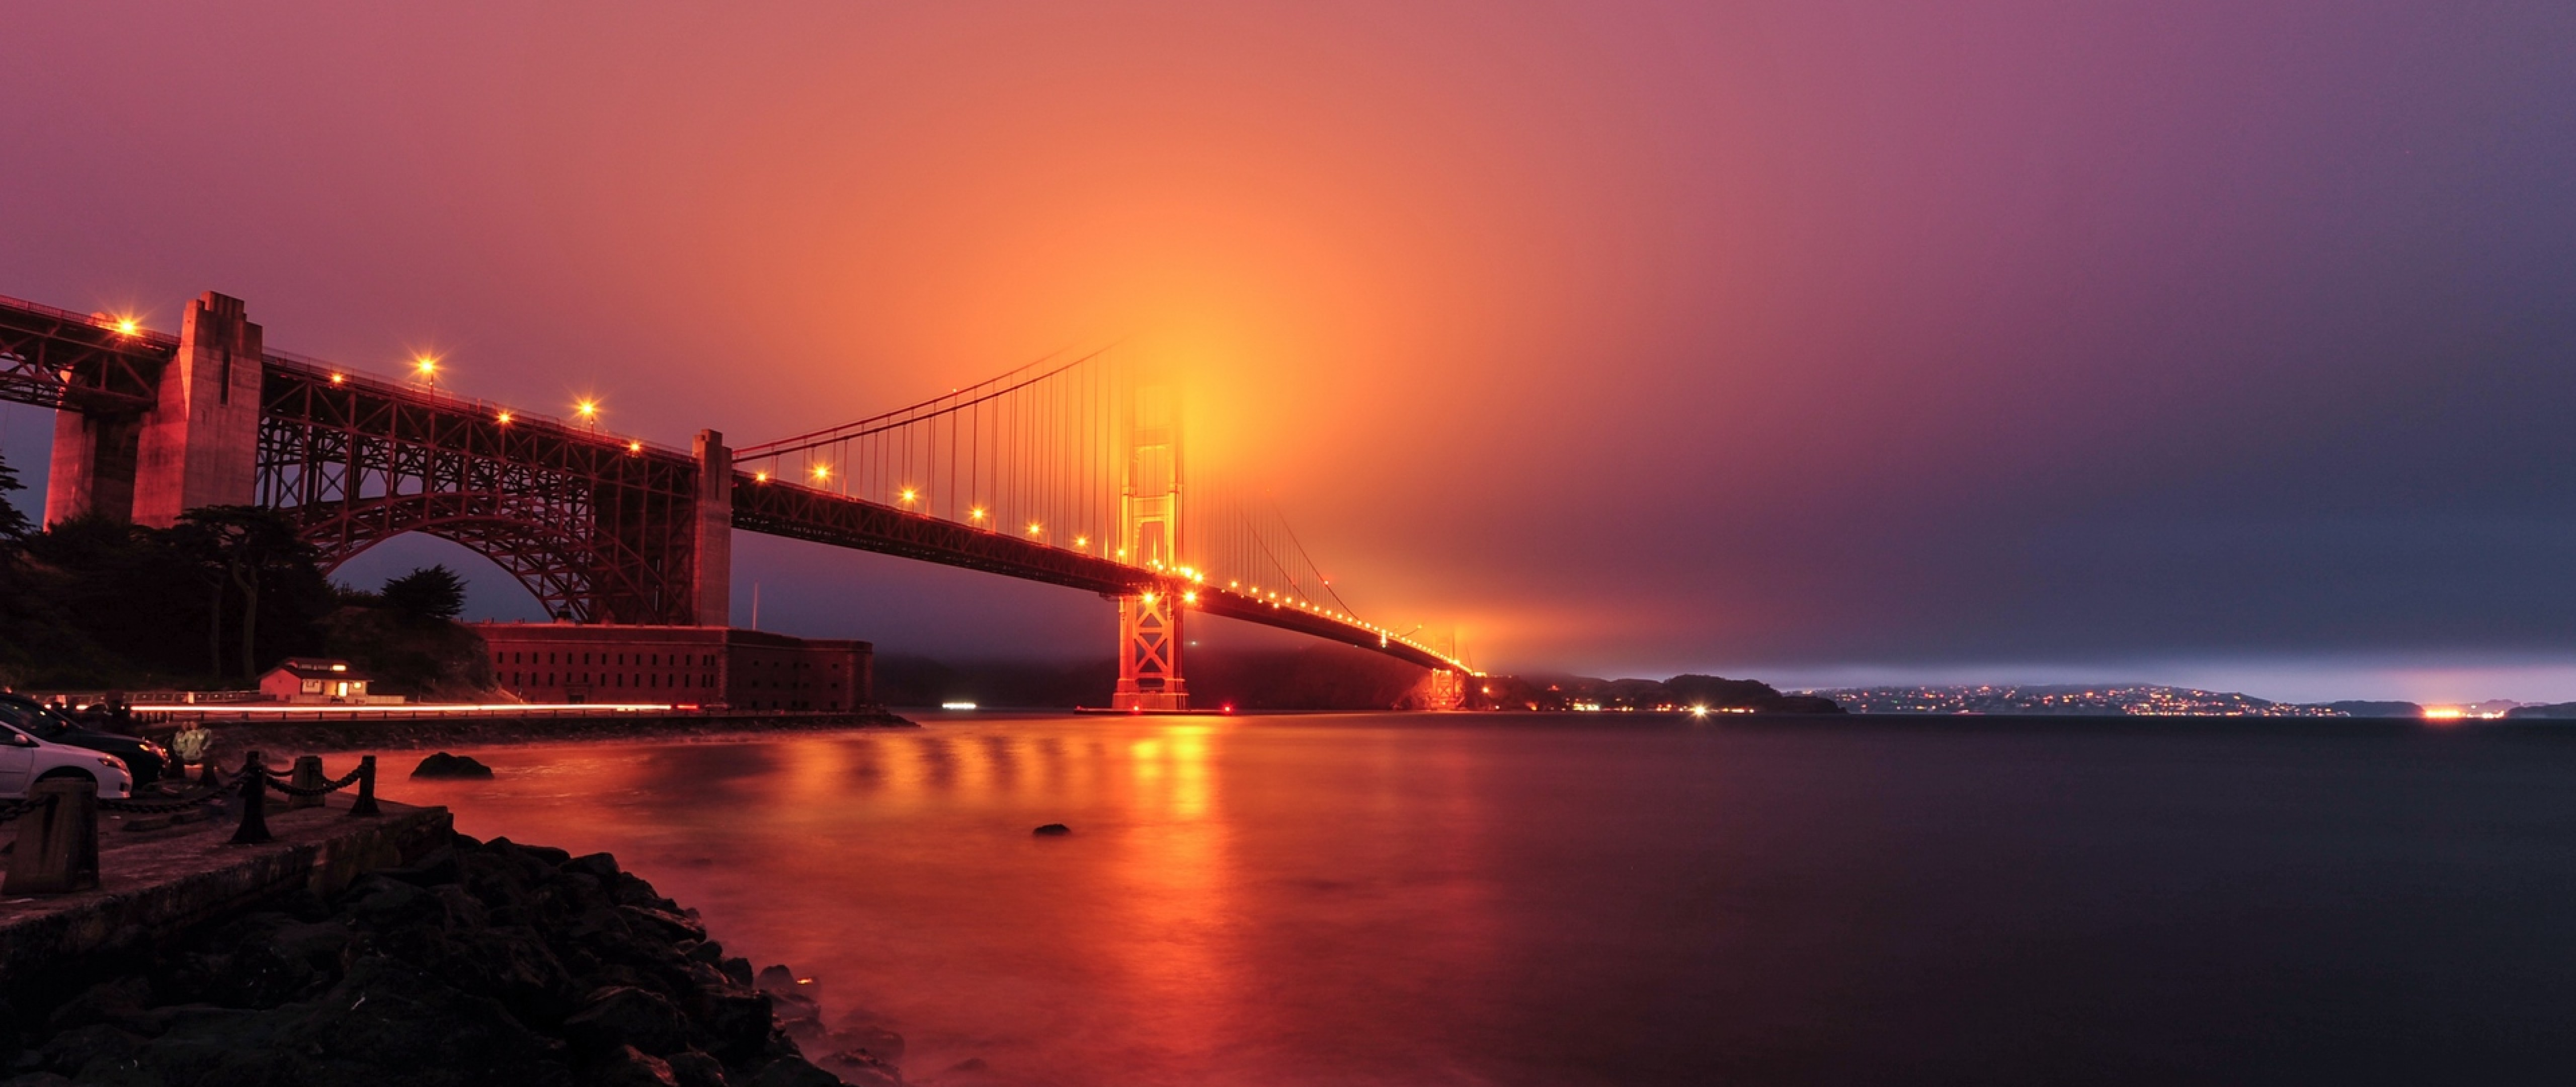 San Francisco Wallpaper 4k Posted By Michelle Thompson